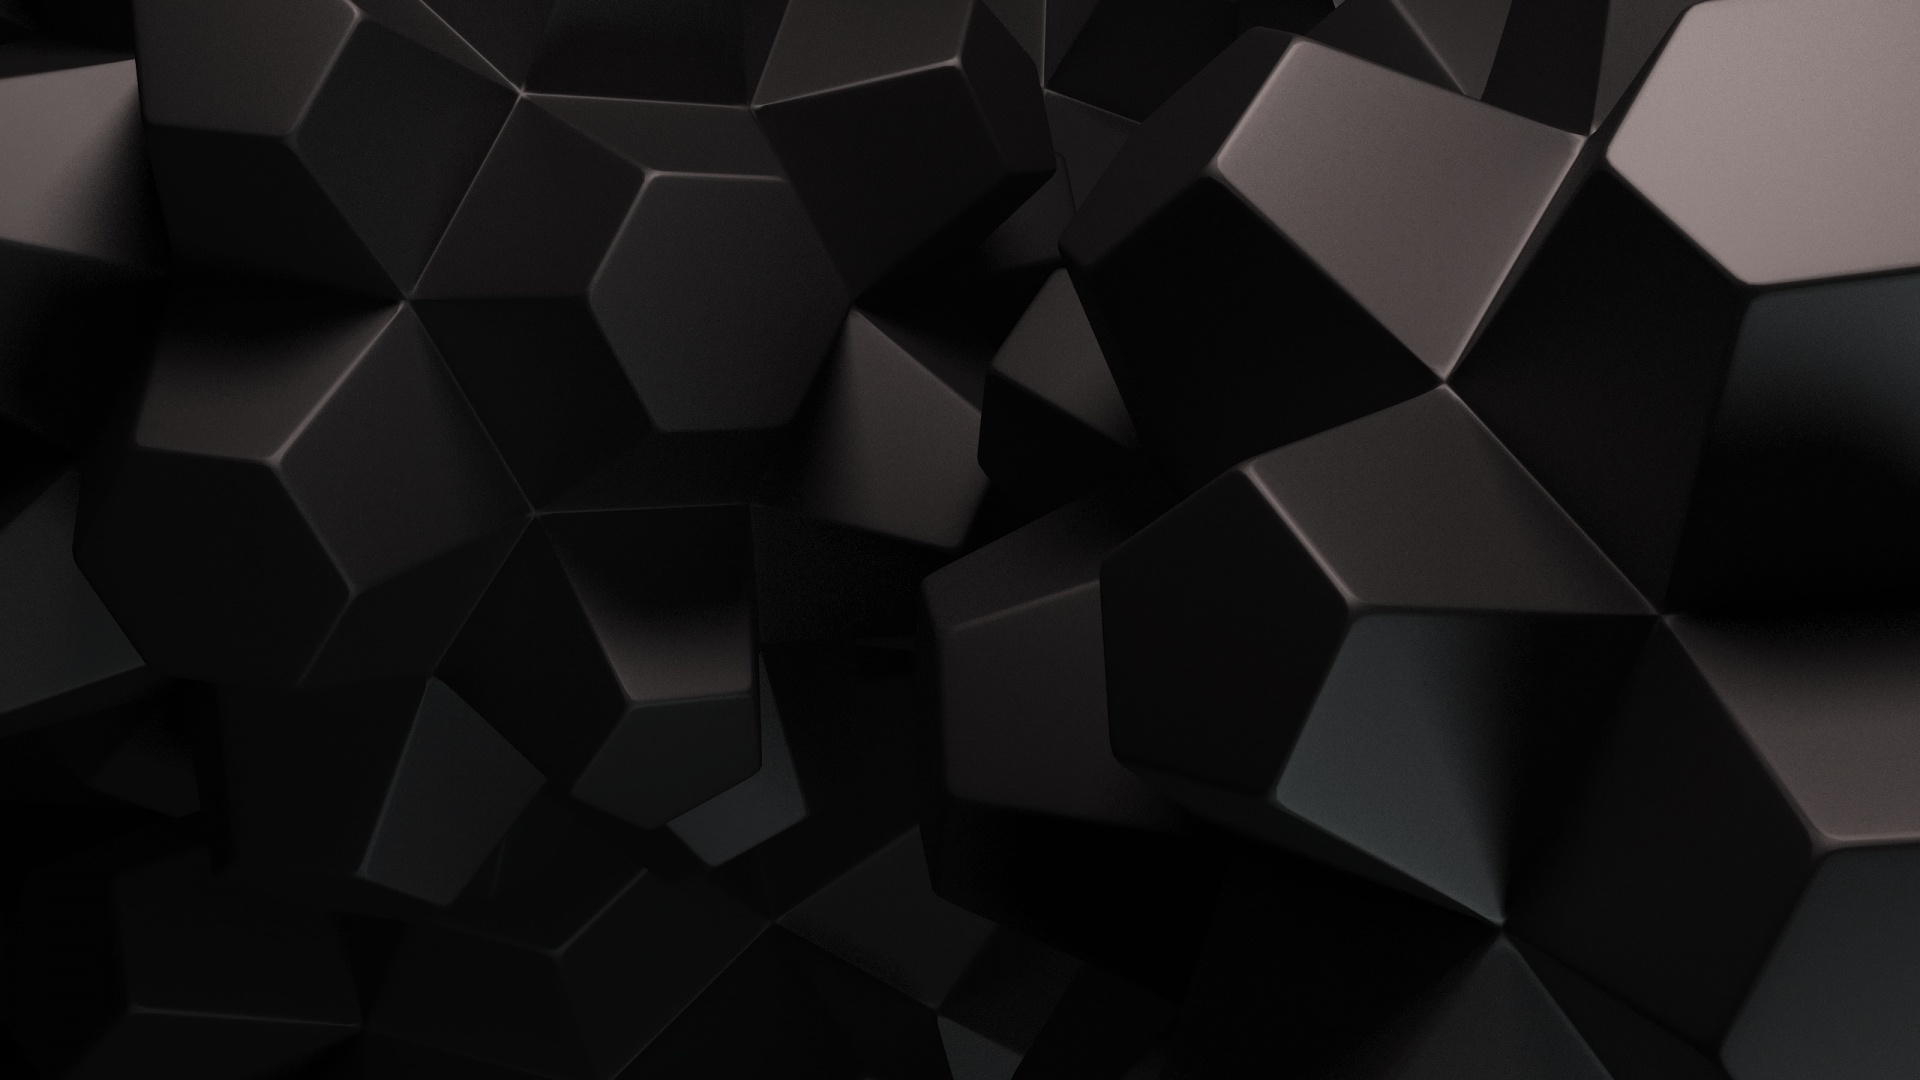 Black Abstract Wallpaper 1920x1080 HD Wallpaper Background Images 1920x1080